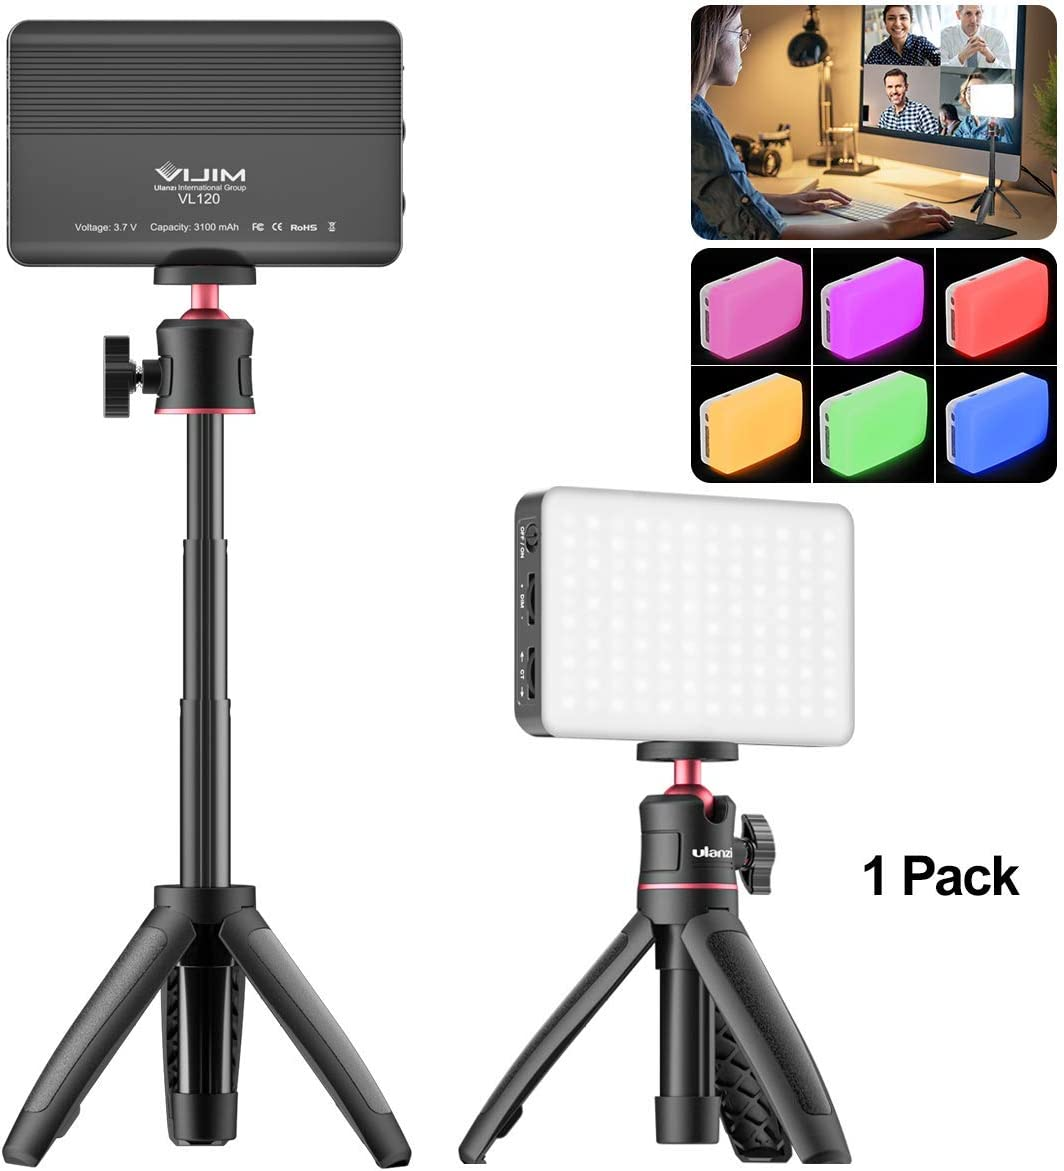 Conference Table Lighting Tripod Kit with VL120 Video Light + Mini Extendable Tripod, Remote Working, Zoom Calls, YouTube, Live Streaming Accessories Compatible with MacBook Tablet Laptop Desktop